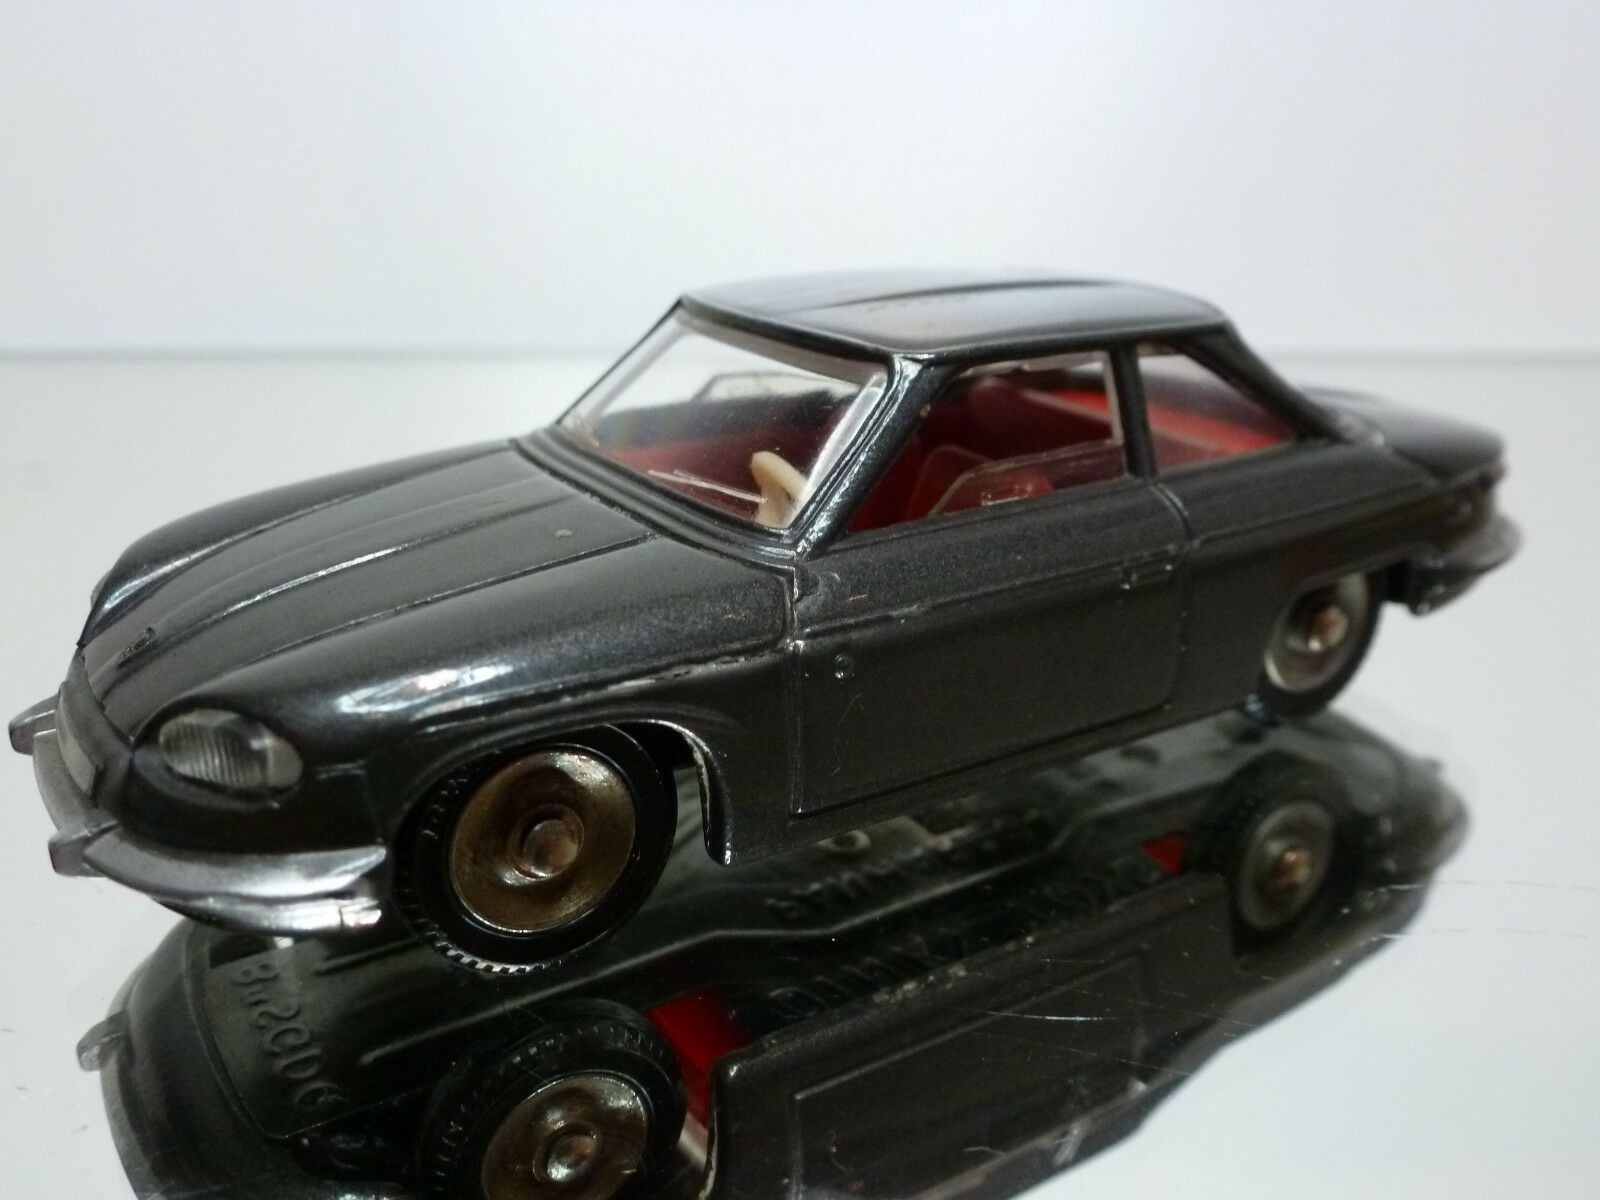 DINKY TOYS 524 PANHARD 24 - ANTHRACITE 1 43 - EXCELLENT CONDITION